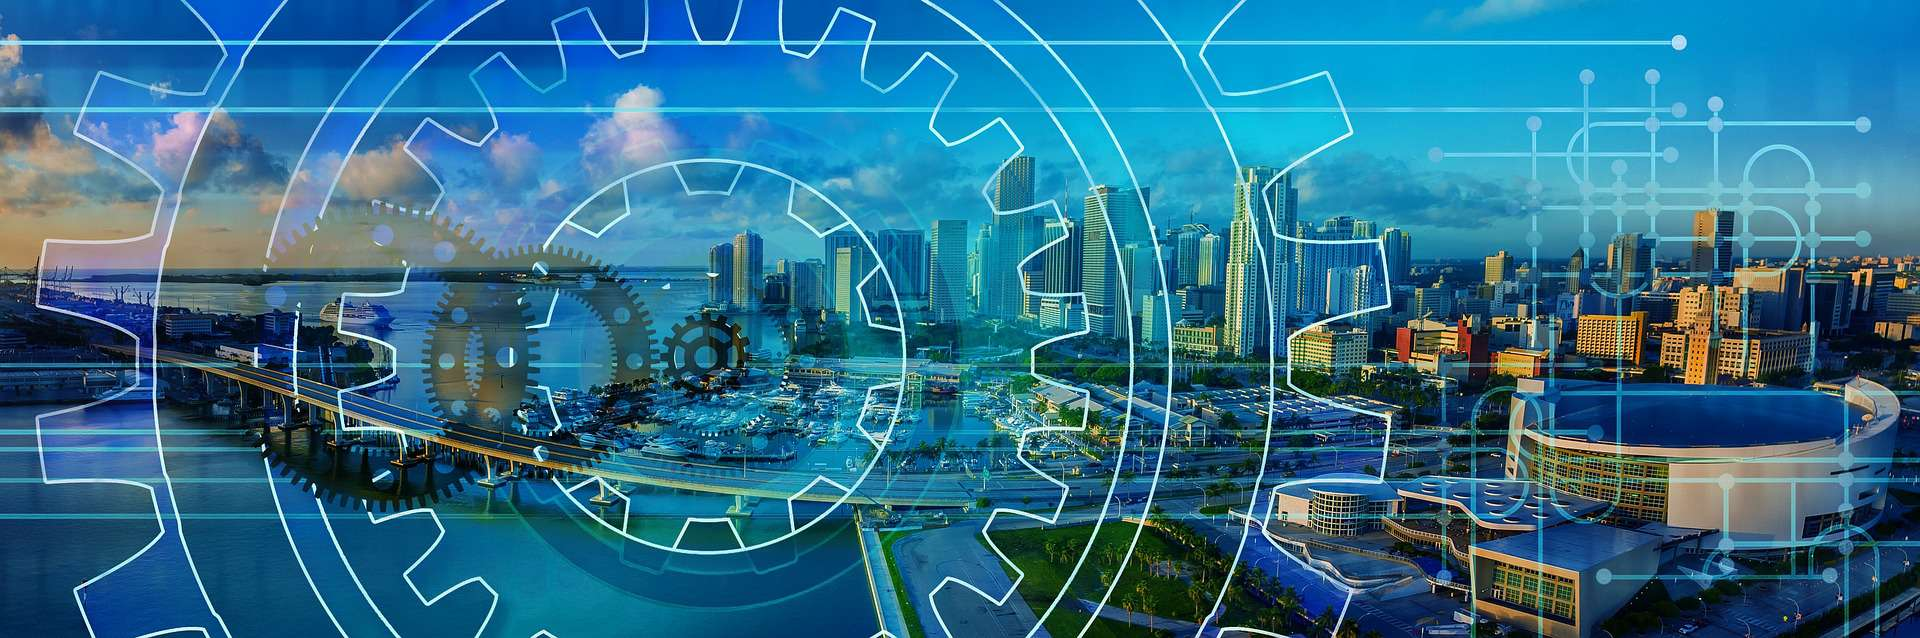 cityscape with gears